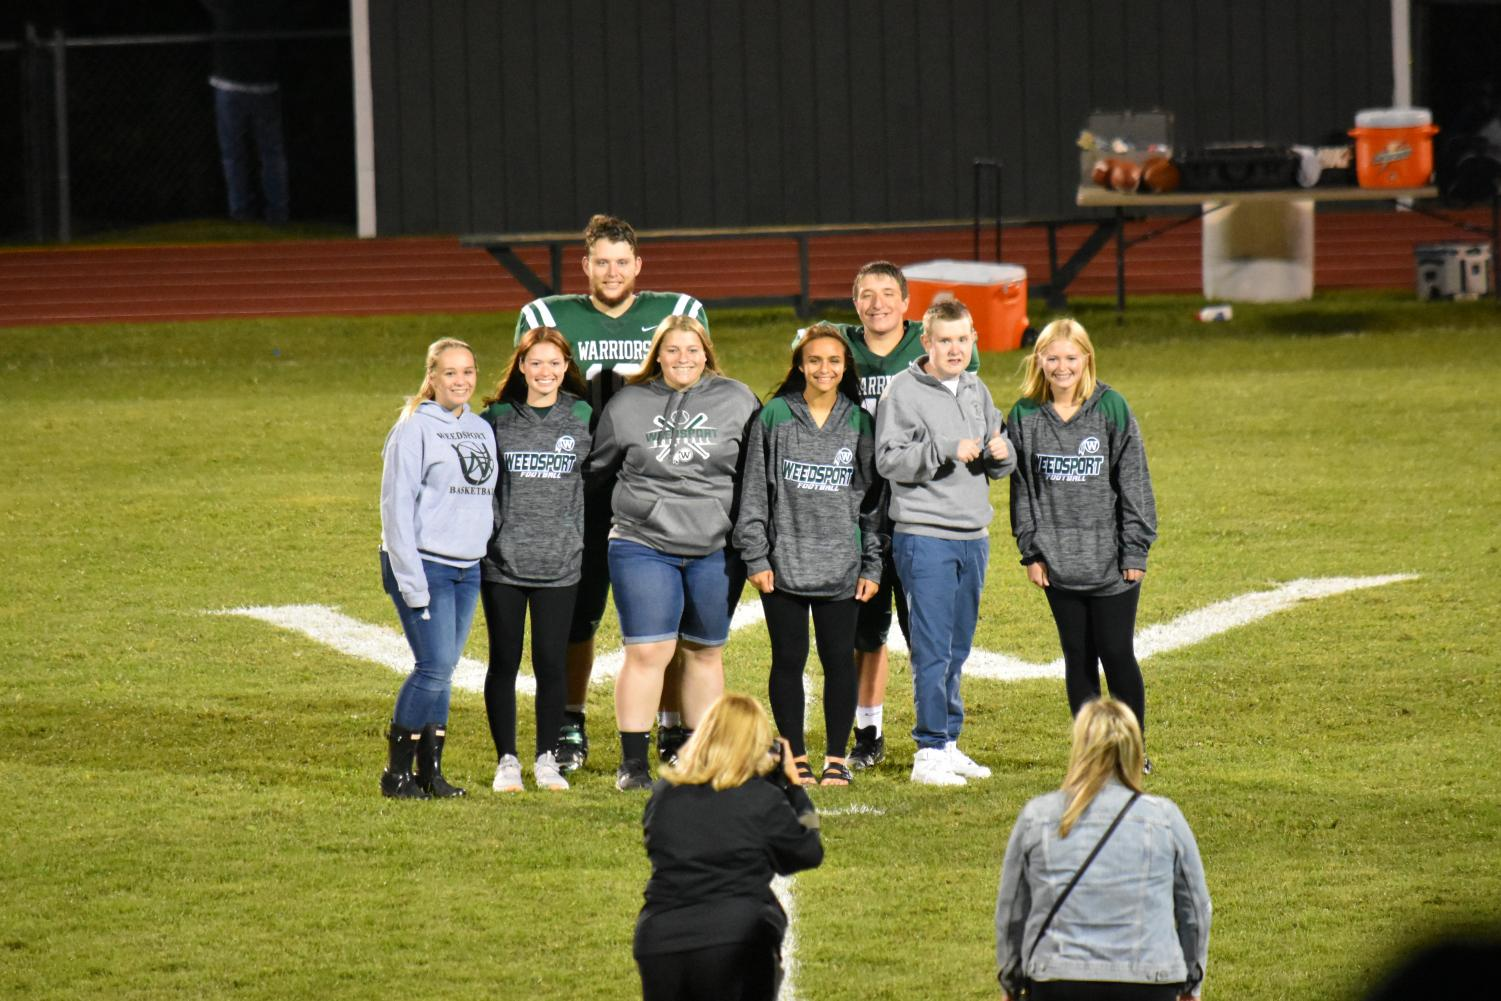 The 2019 Homecoming Court is recognized at a recent game.